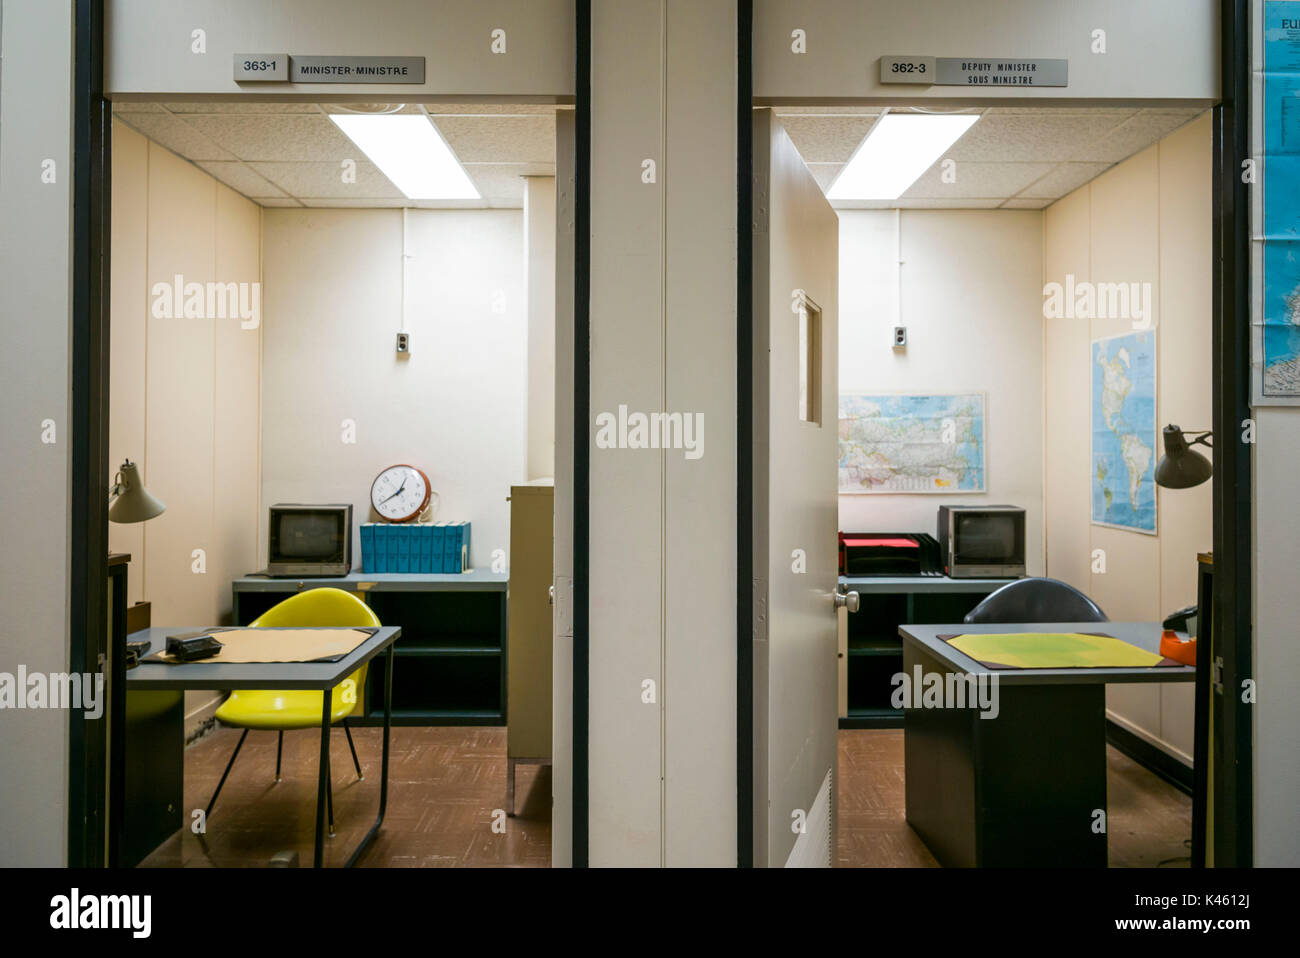 Canada, Ontario, Carp, The Diefenbunker, Canadian Cold War Museum in underground bunker, ministerial offices - Stock Image